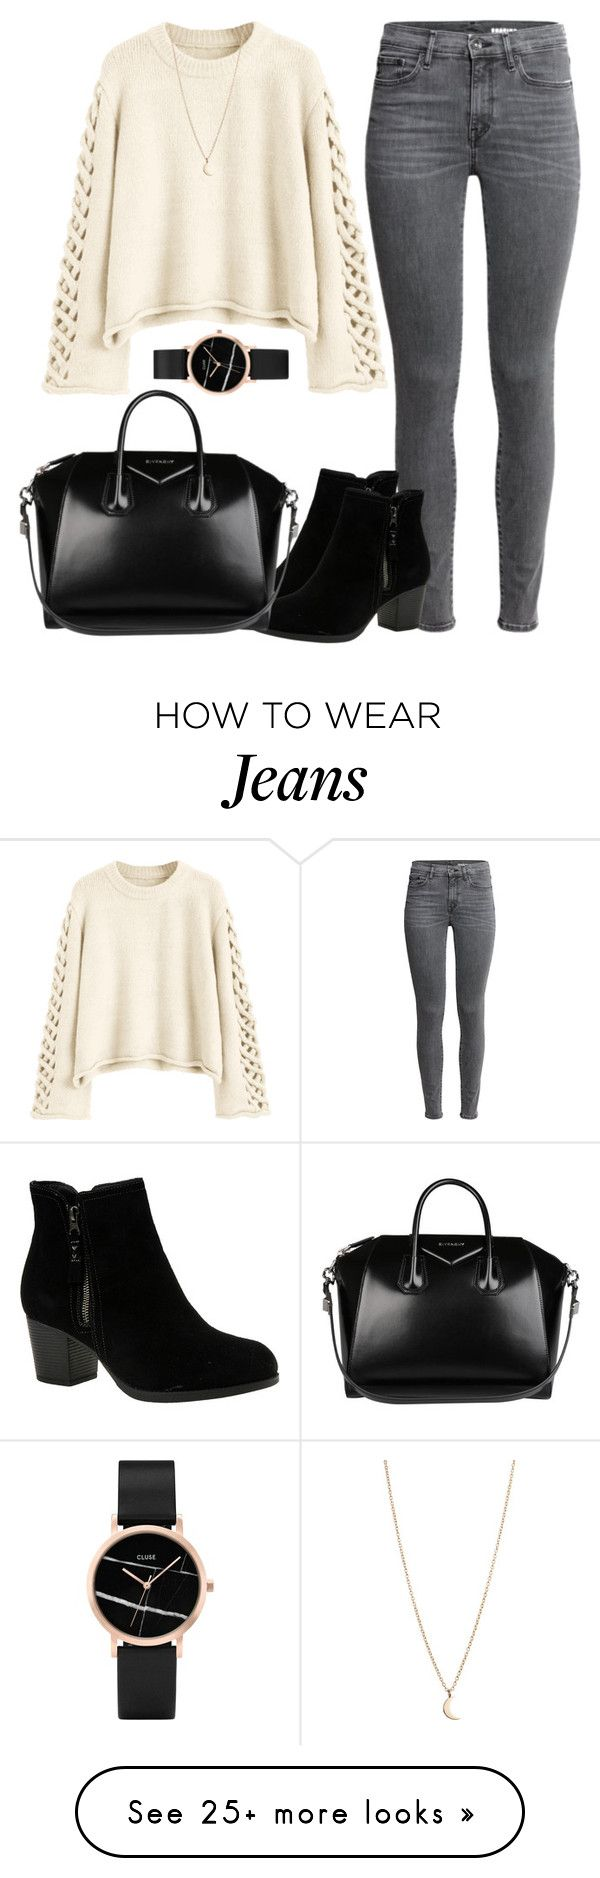 """Untitled #1590"" by blossomfade on Polyvore featuring Skechers, Minor Obsessions, Givenchy and CLUSE"